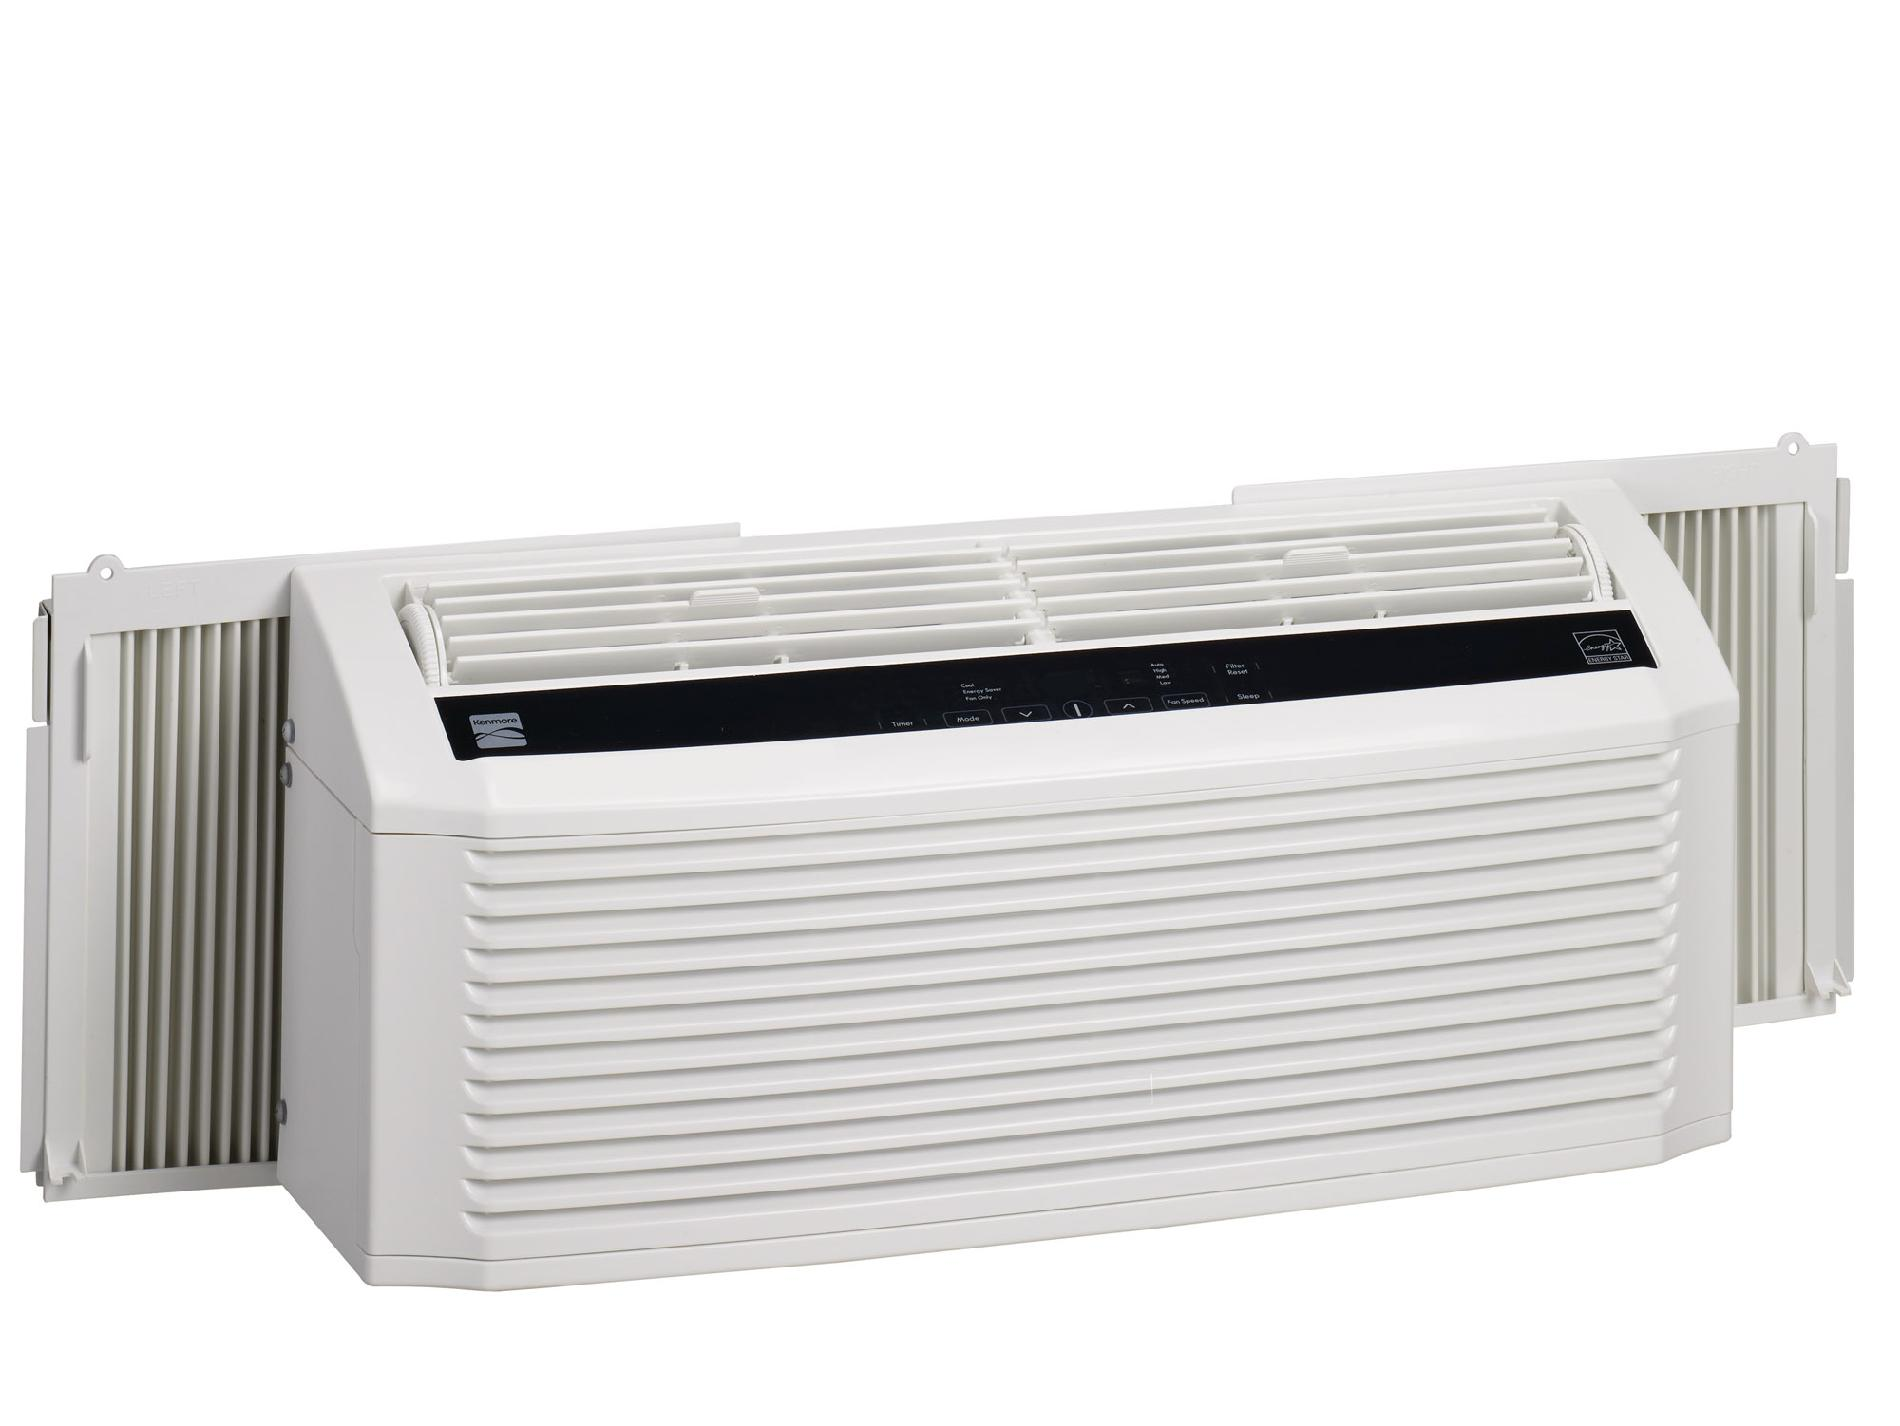 Kenmore 70062 6 000 BTU Room Air Conditioner